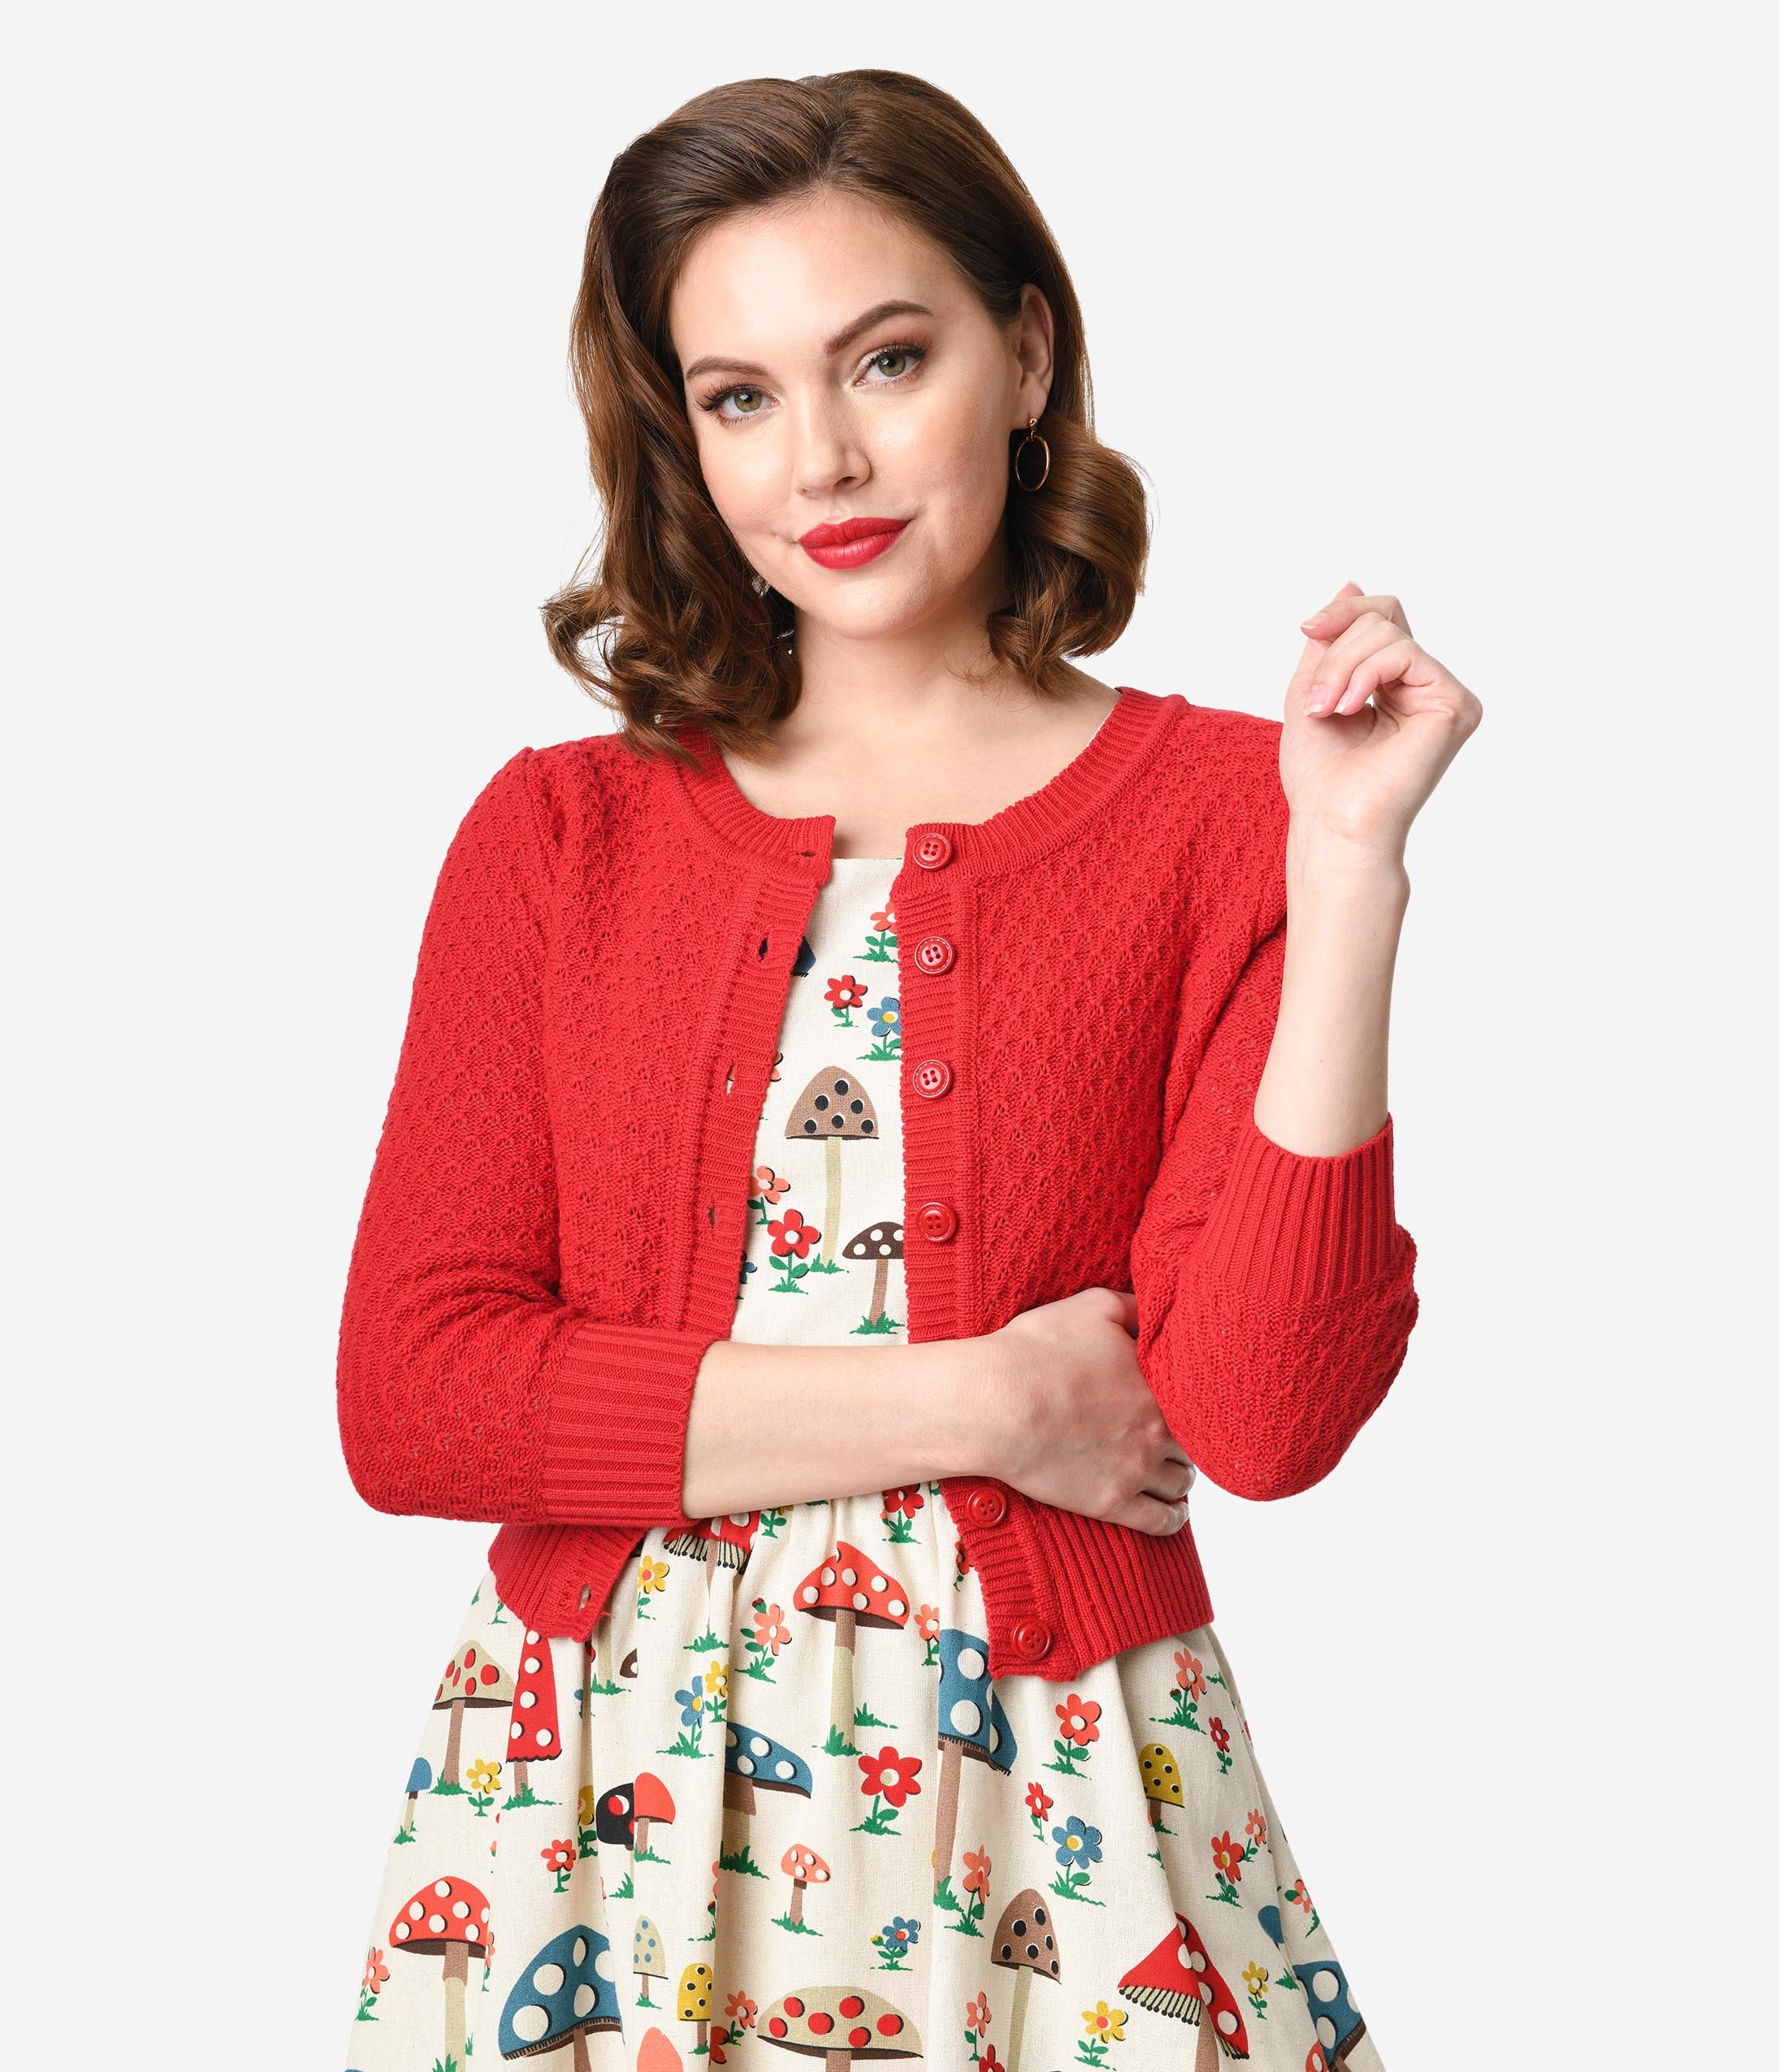 1950s Sweaters, 50s Cardigans, 50s Jumpers Retro Style Red Cotton Crochet Sleeved Button Cardigan $28.00 AT vintagedancer.com